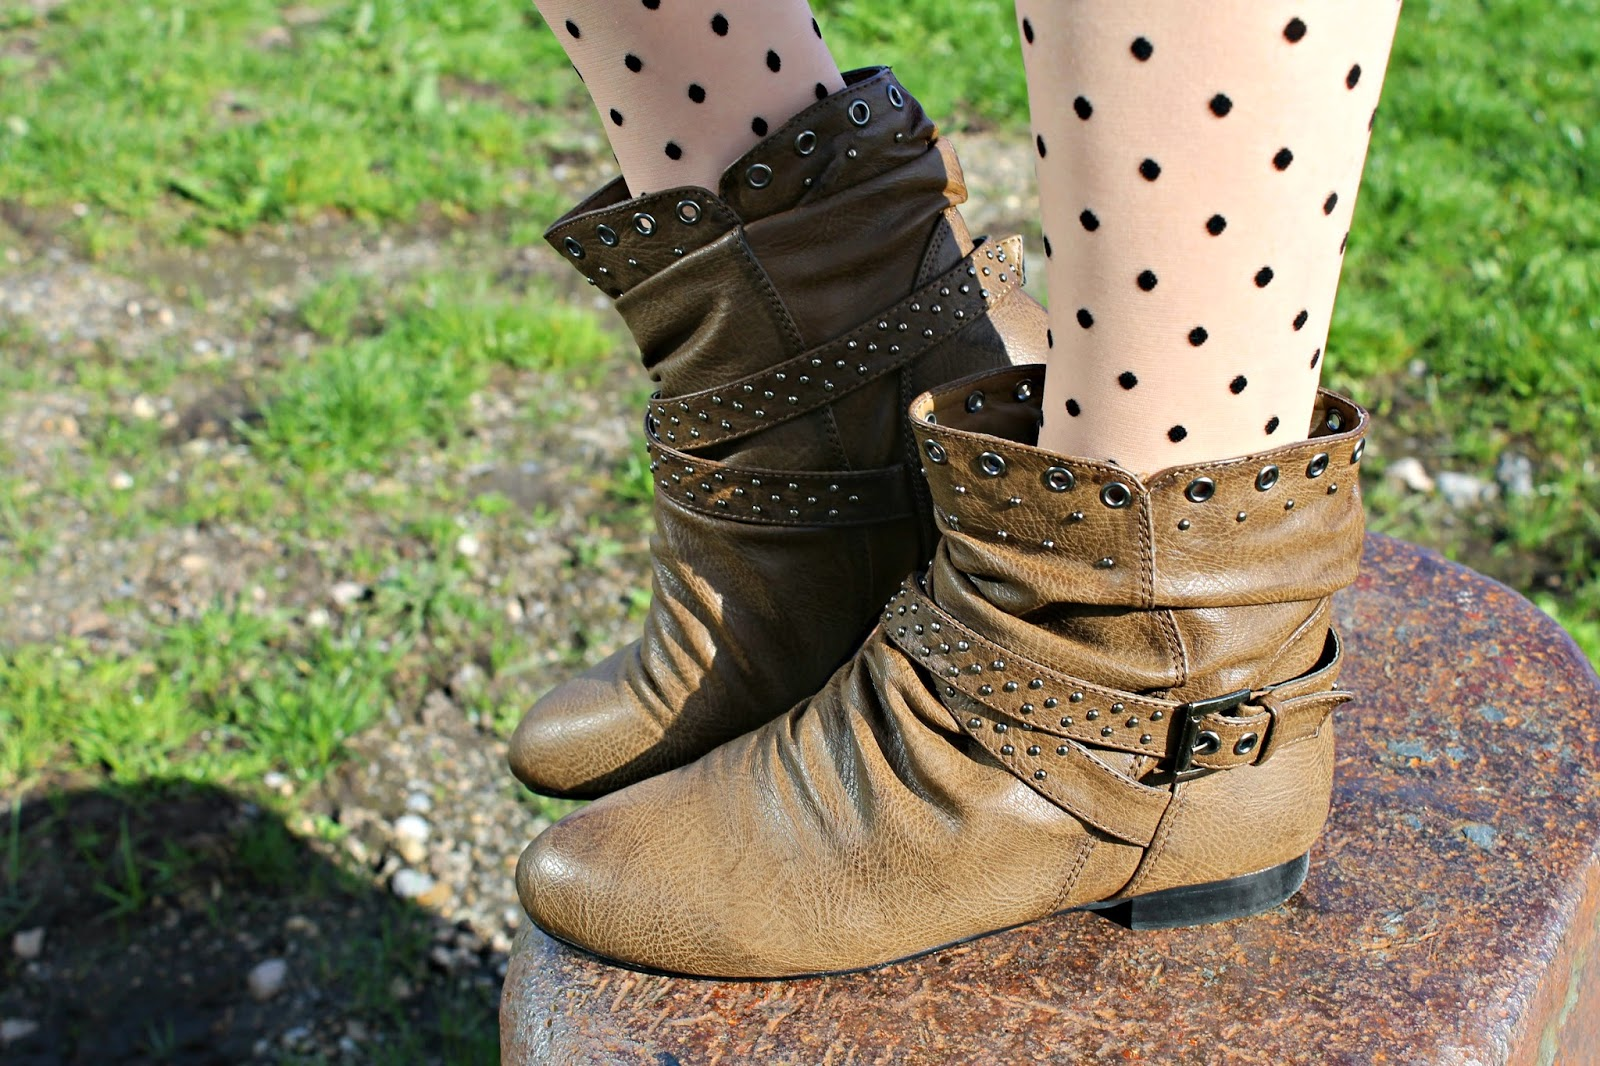 Ankle Boots Just for 5 pounds